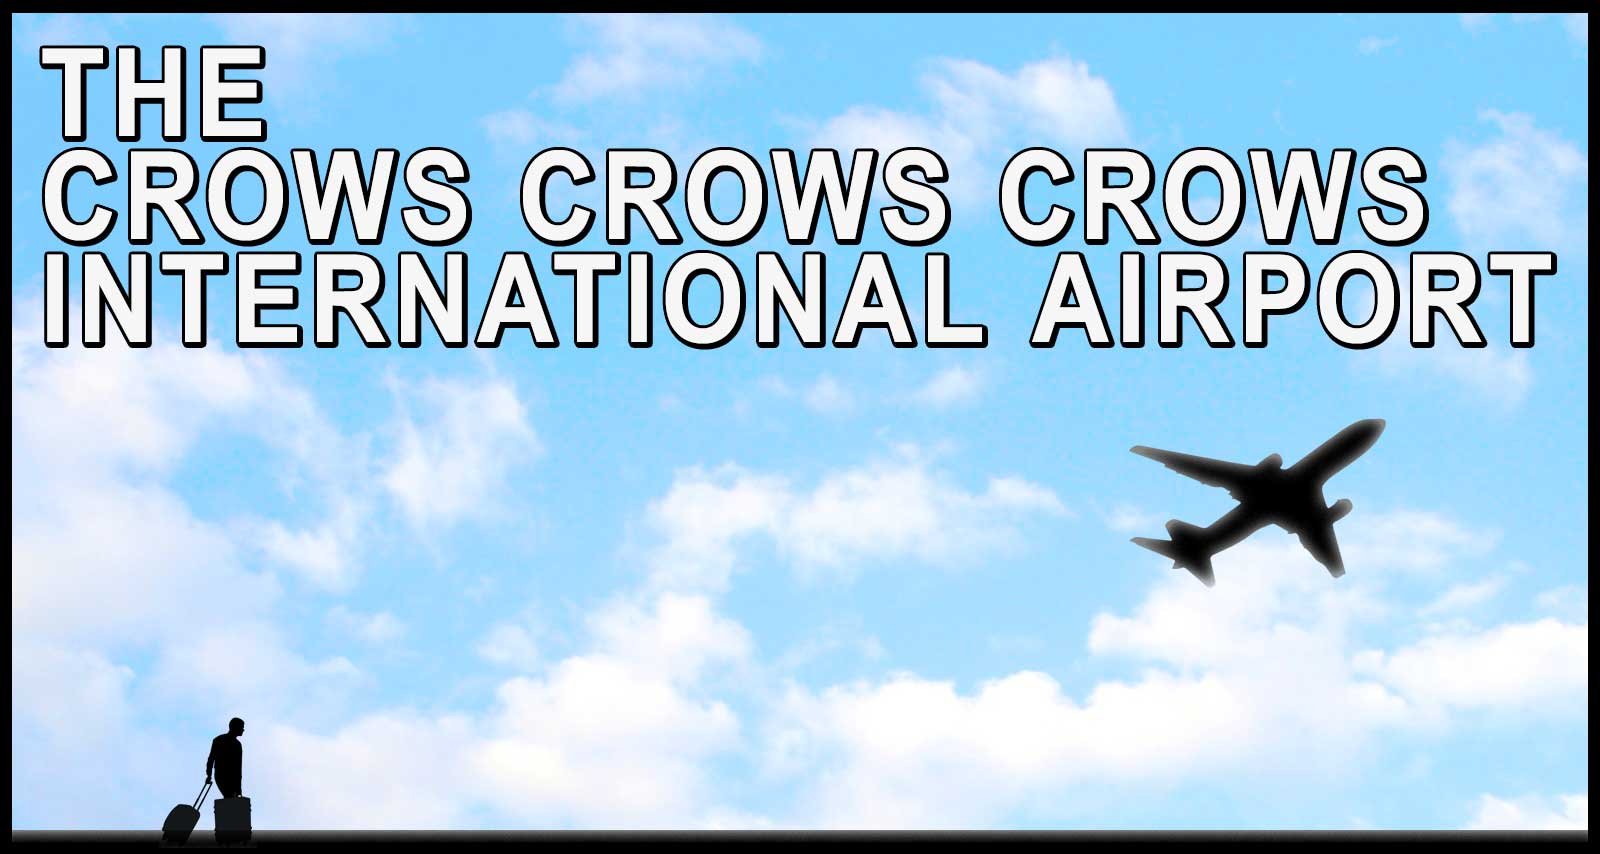 The Crows Crows Crows International Airport